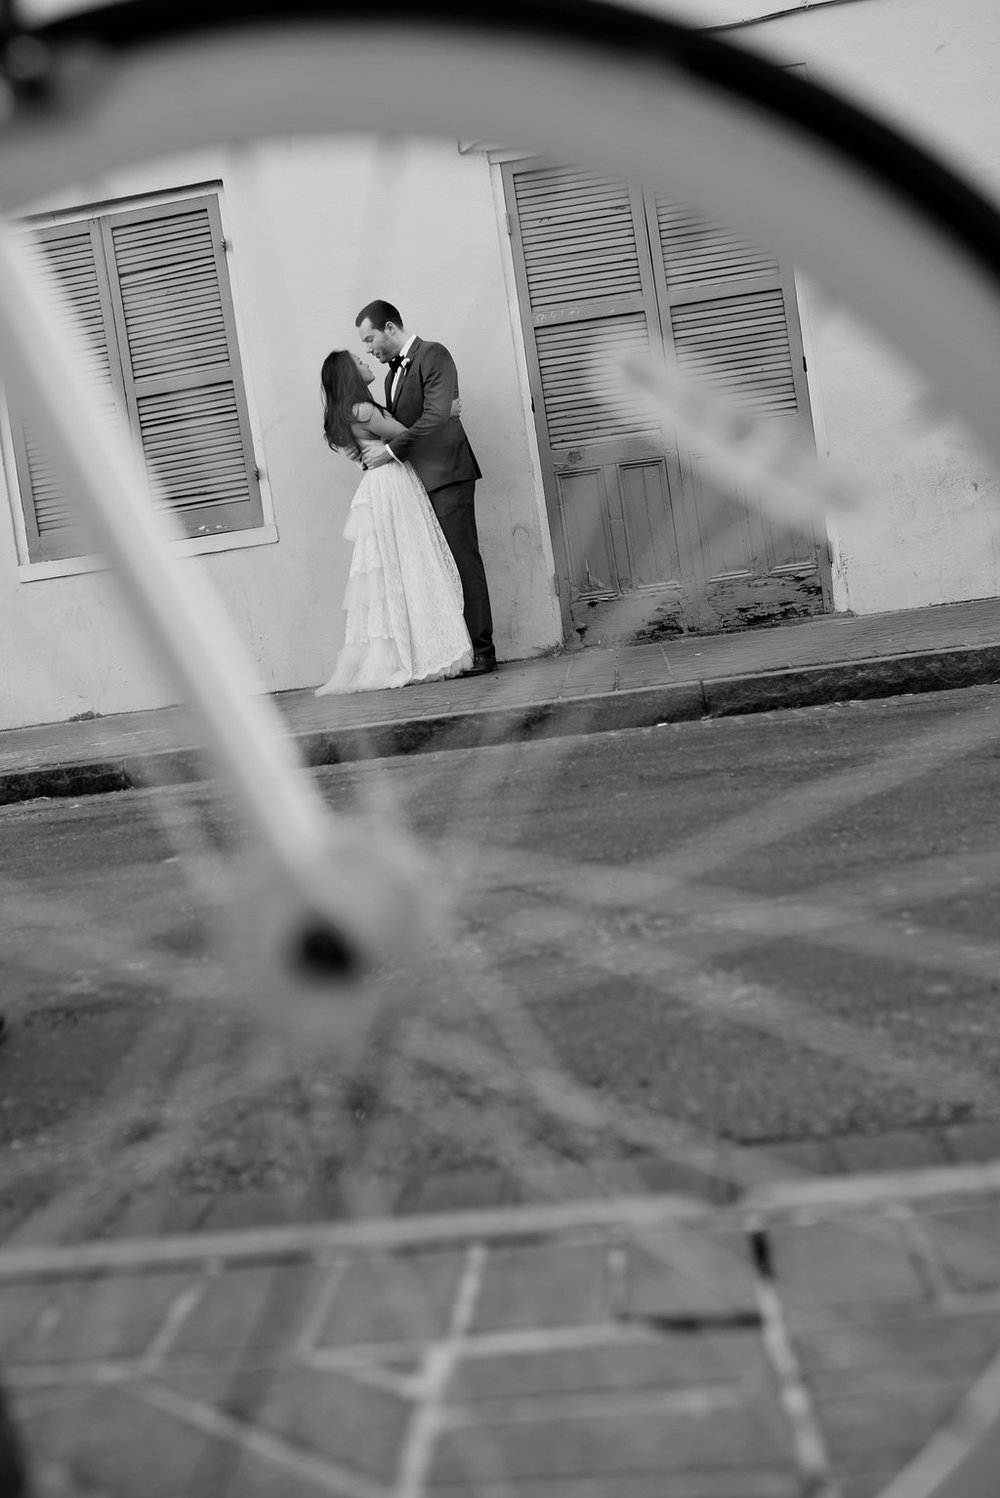 new-orleans-wedding-photographer-26.jpg